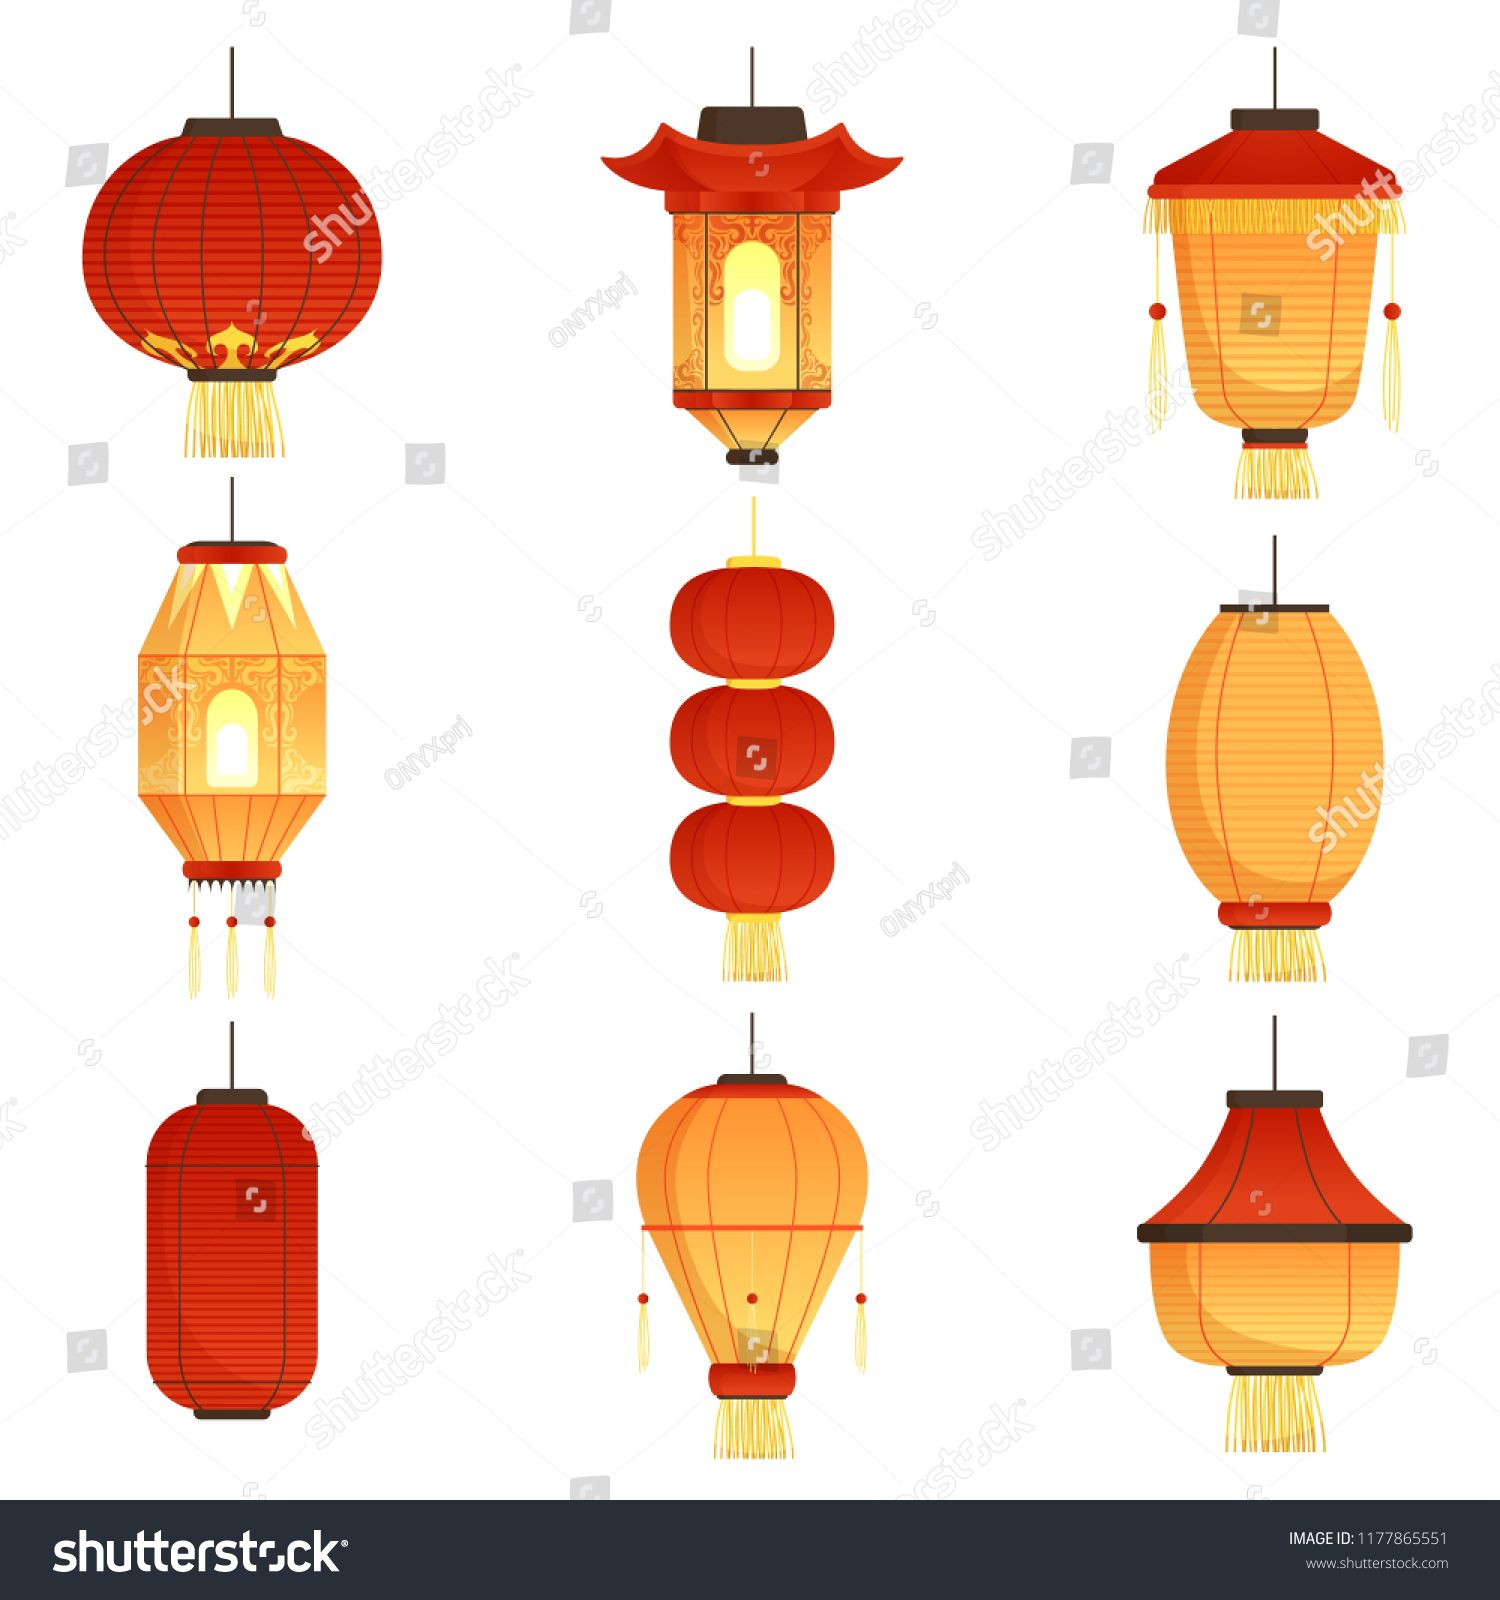 Asian Cartoon Lanterns Chinese And Chinatown Festival Papers Lanterns Vector Illustrations Holiday Chinese El In 2020 Chinese Lights Asian Lamps Lantern Illustration